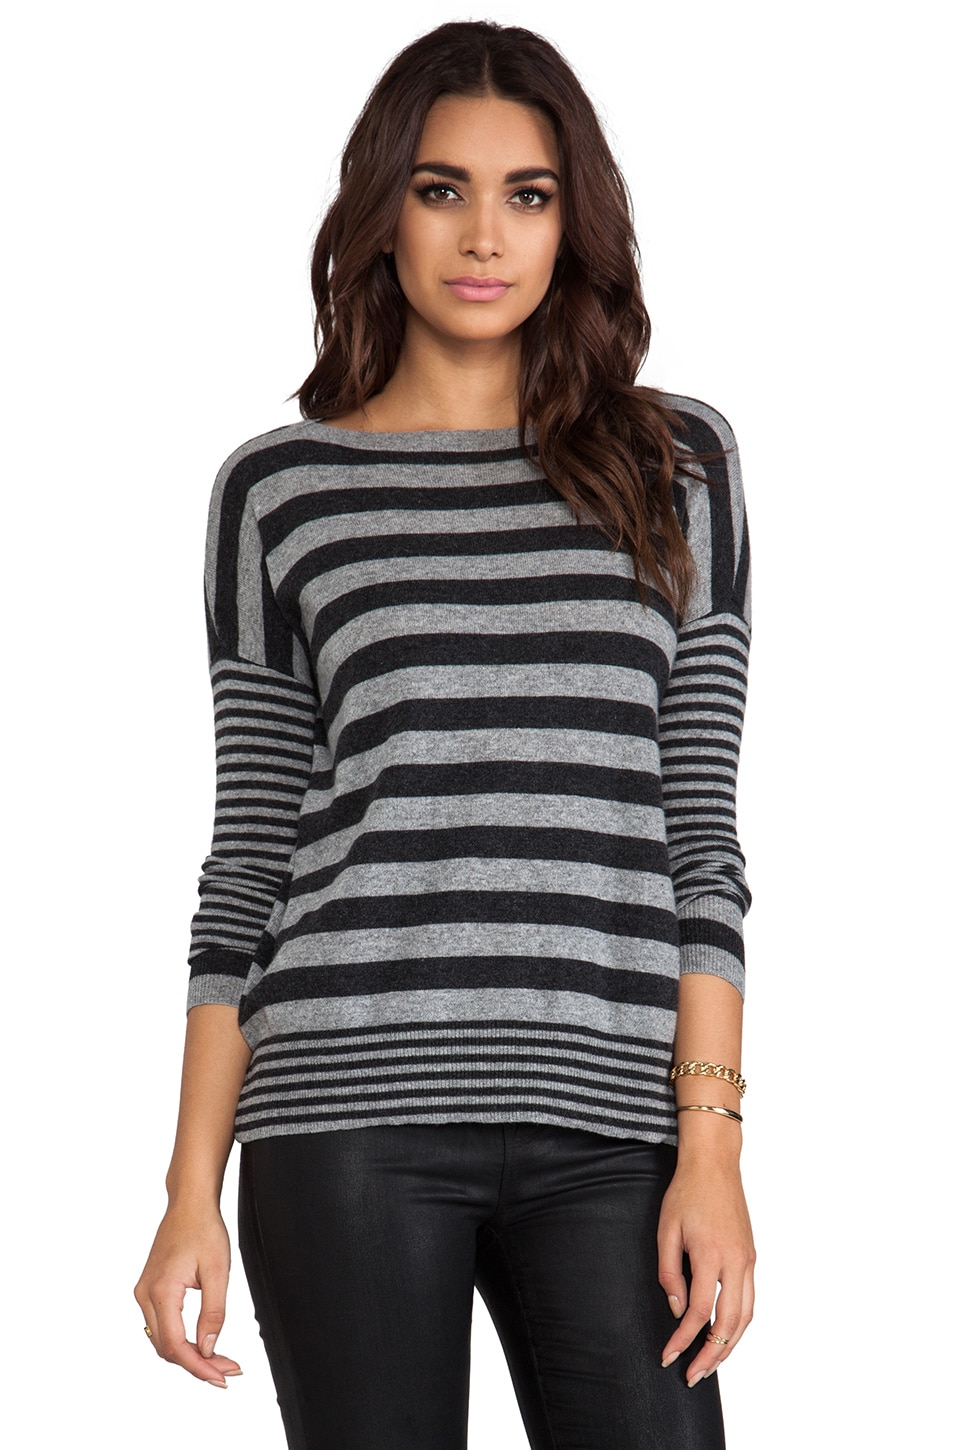 Autumn Cashmere Boxy Mixed Stripe Boatneck Sweater in Cement/Pepper